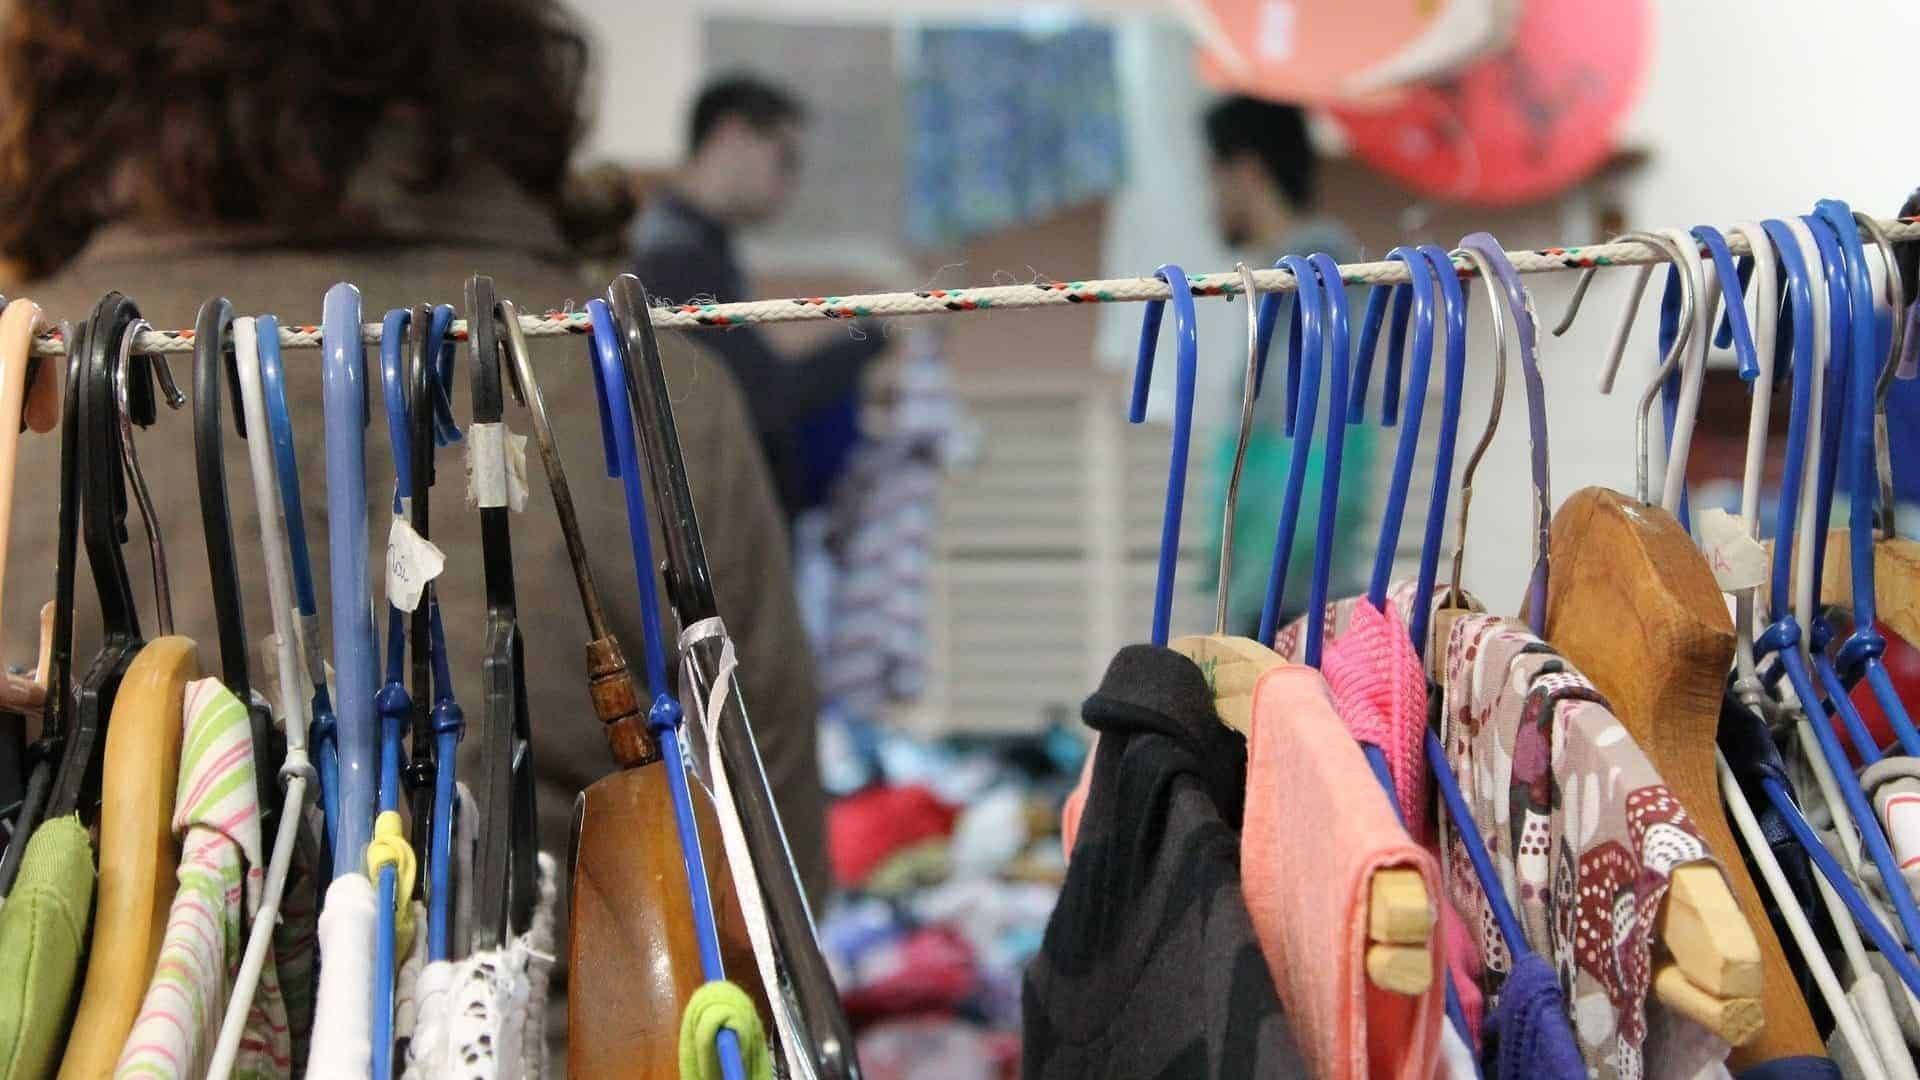 Top 40 Thrift Store Secrets Every Bargain Hunter Should Know!